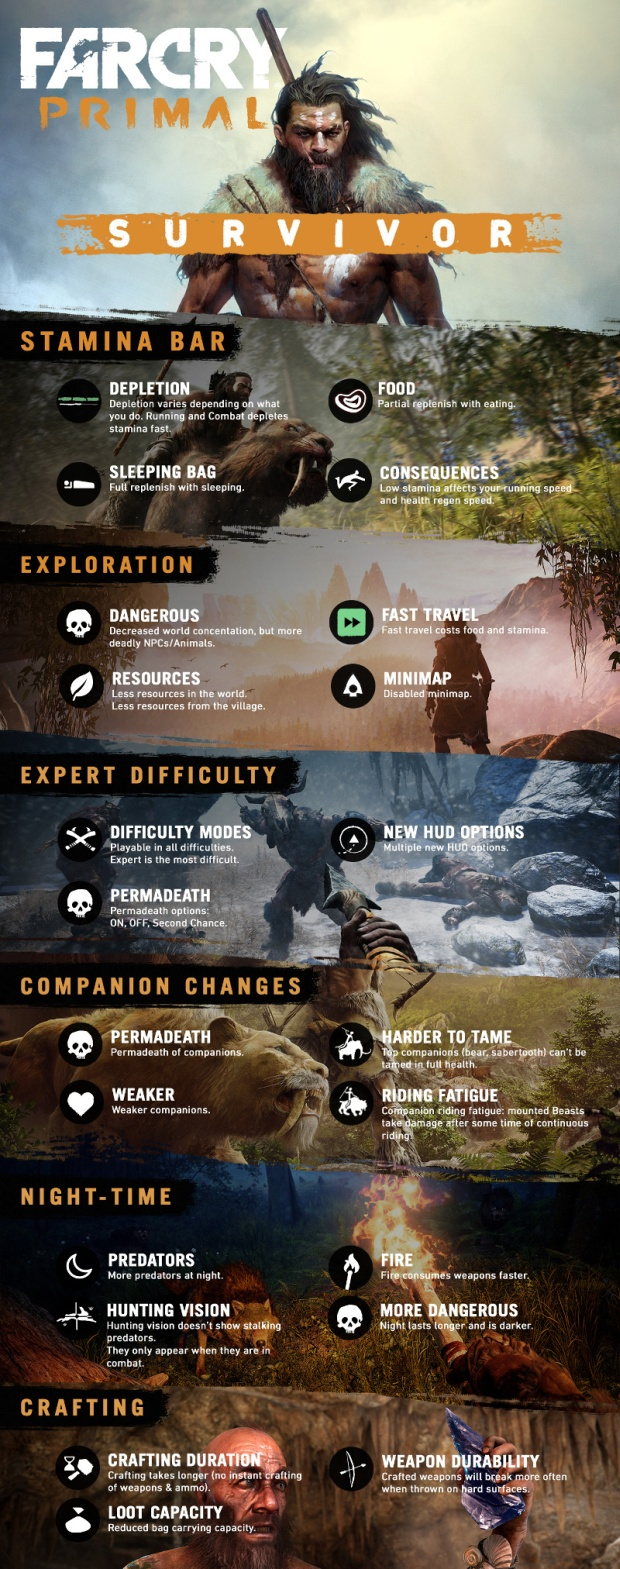 Far Cry Primal's survival mode features